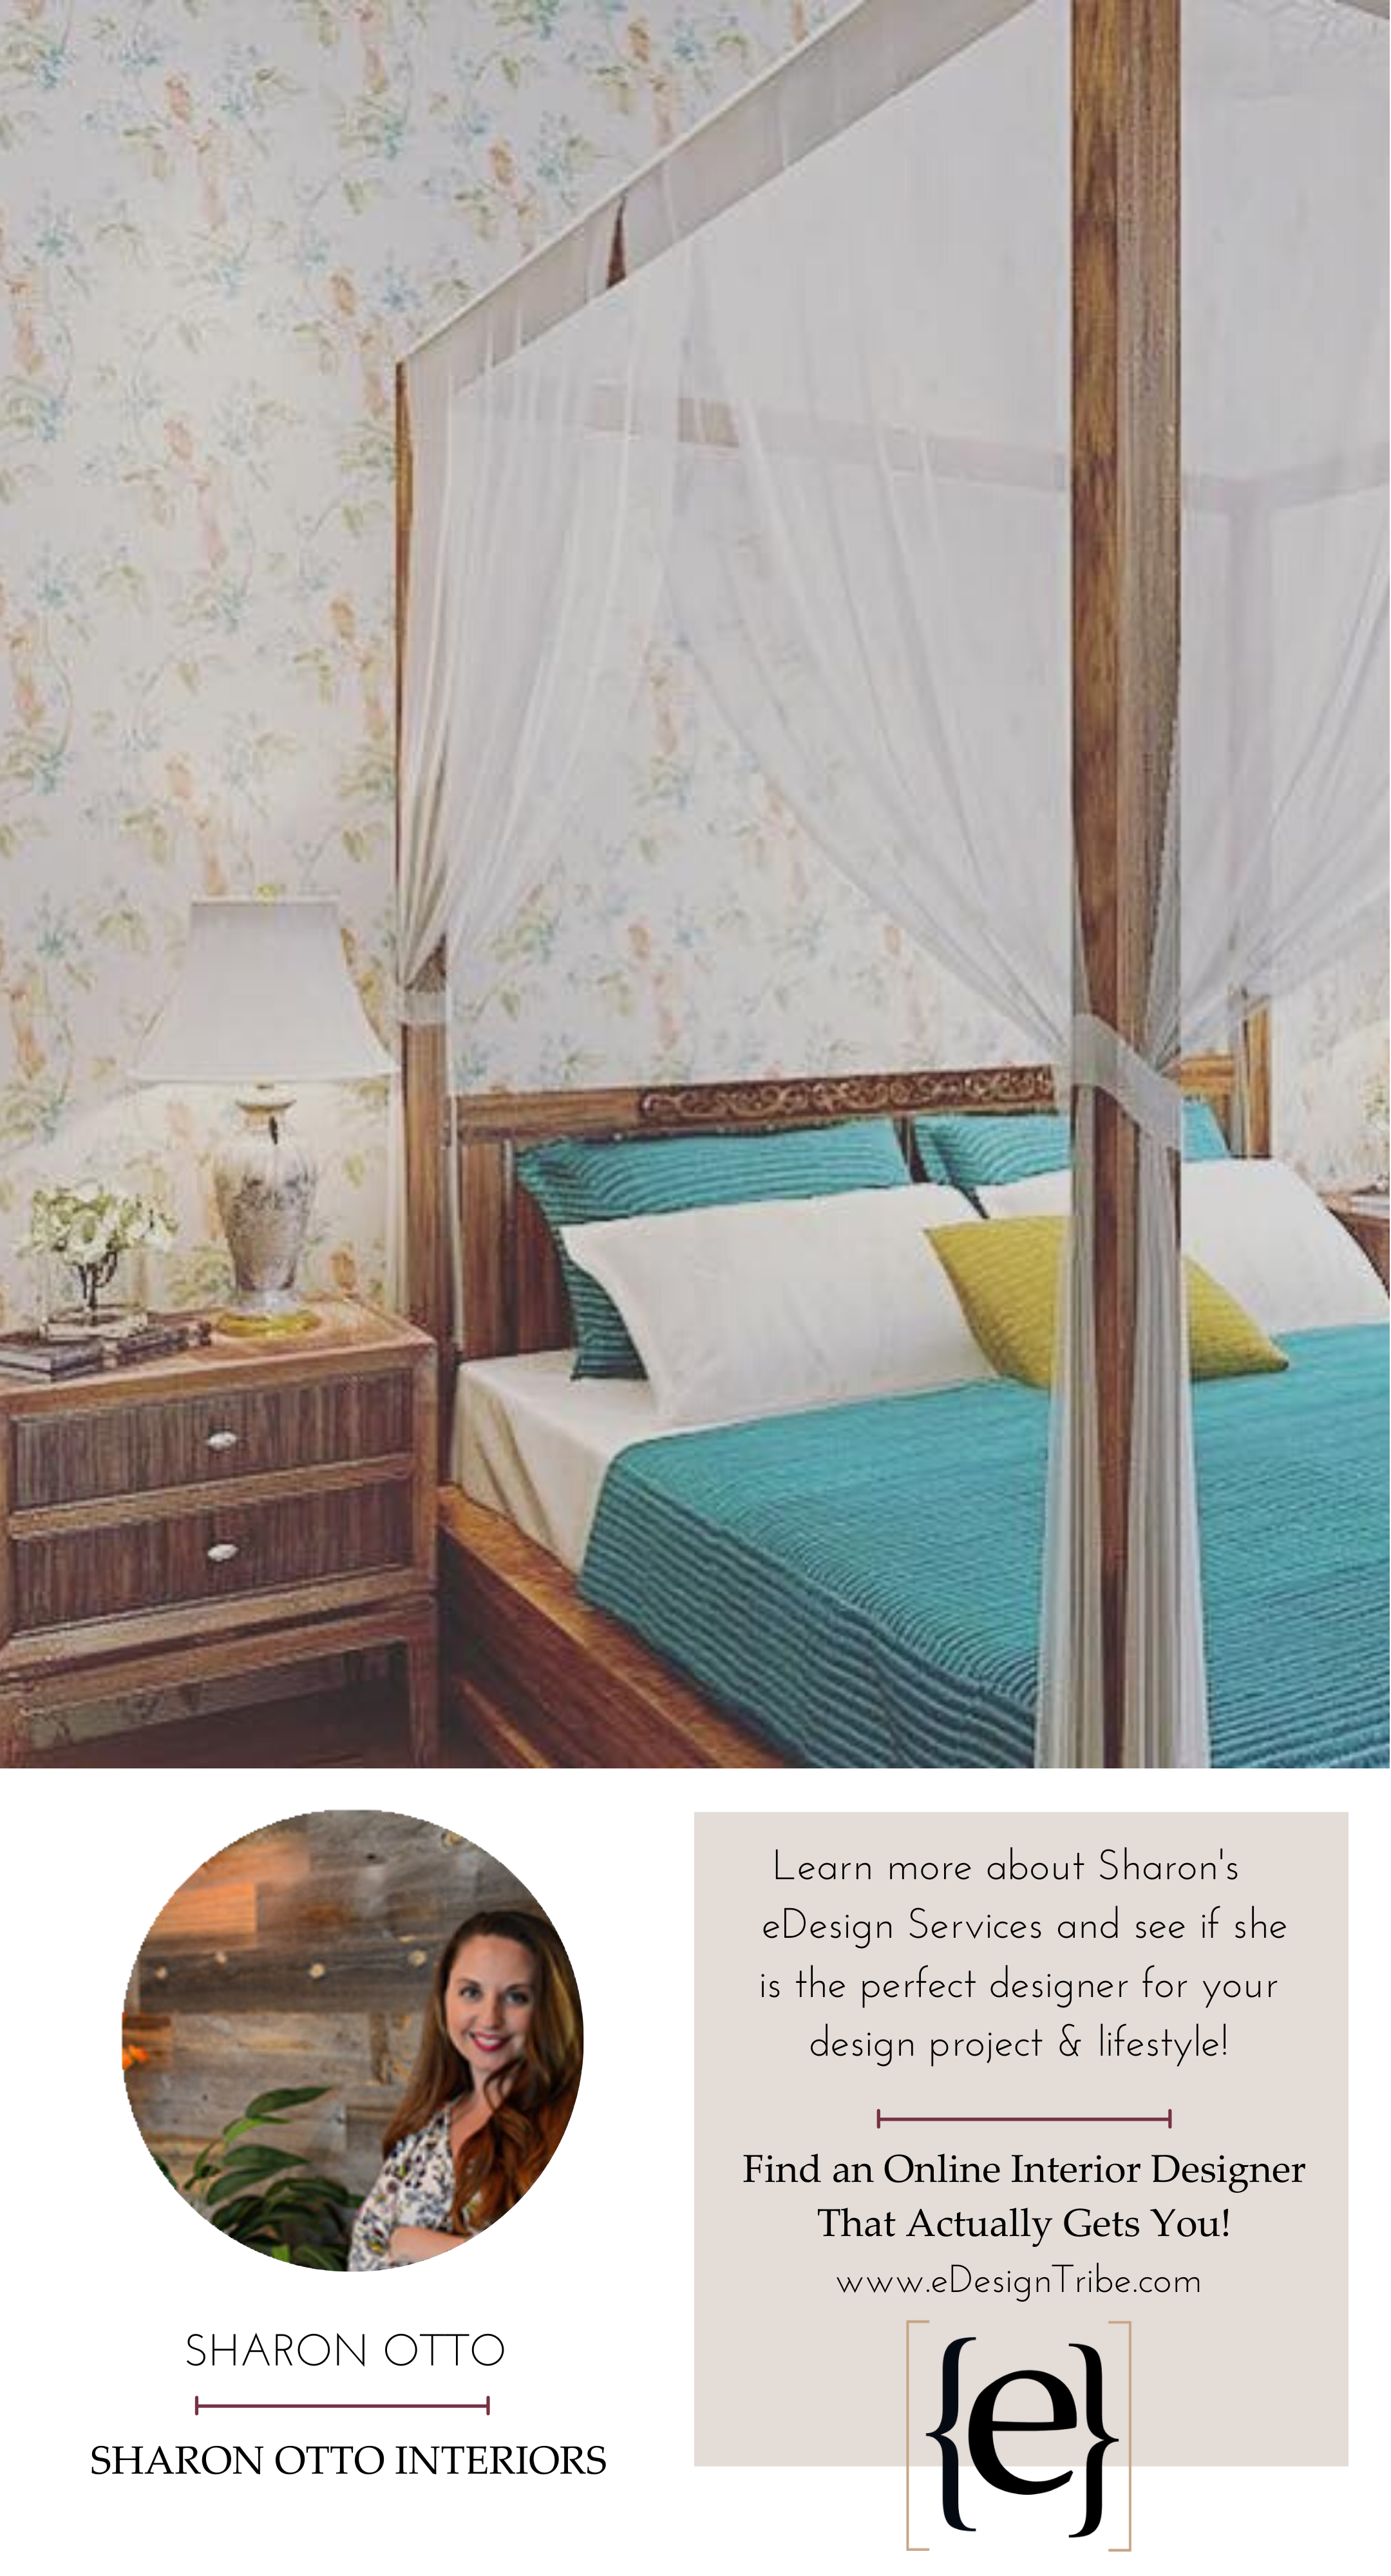 Learn more about Sharon's services and see if she's the e-designer for you!  >> sharonottointeriors.com <<  #edesigntribe #edesignrevolution #interiordesign #edesign #onlineinteriordesign #edesignservices #virtualdesign #edesigner